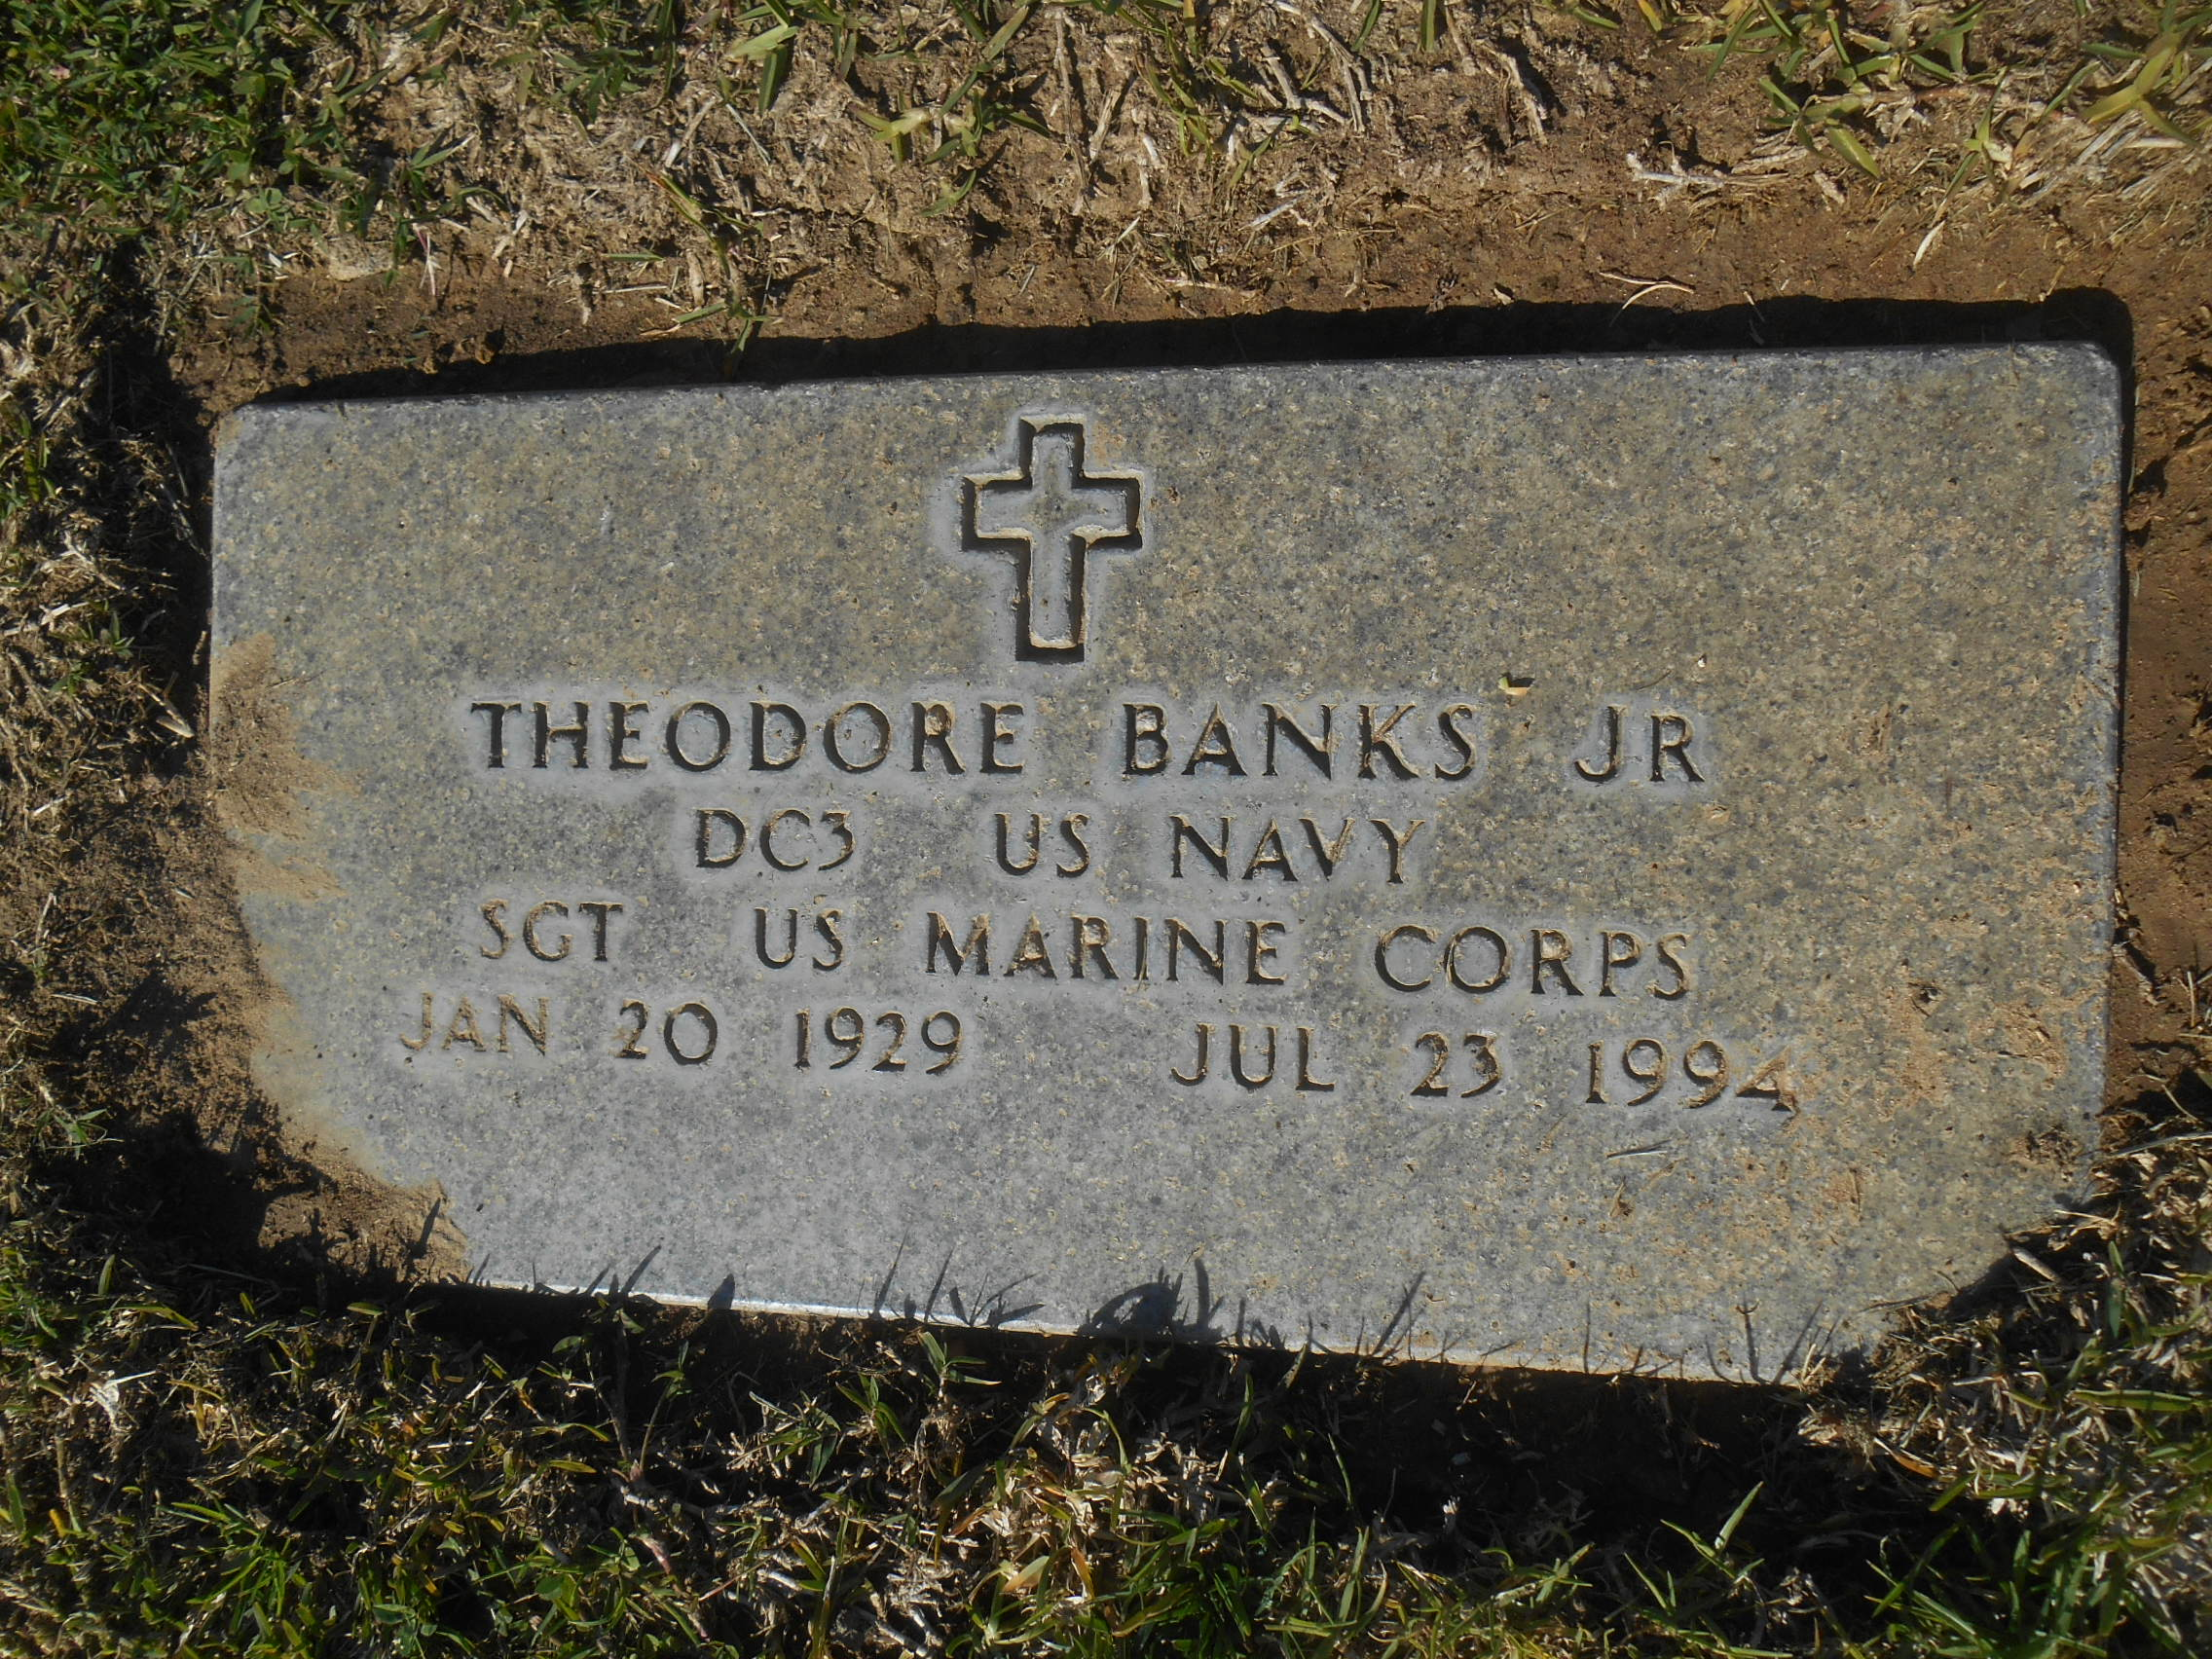 PFC Theodore Banks, Jr